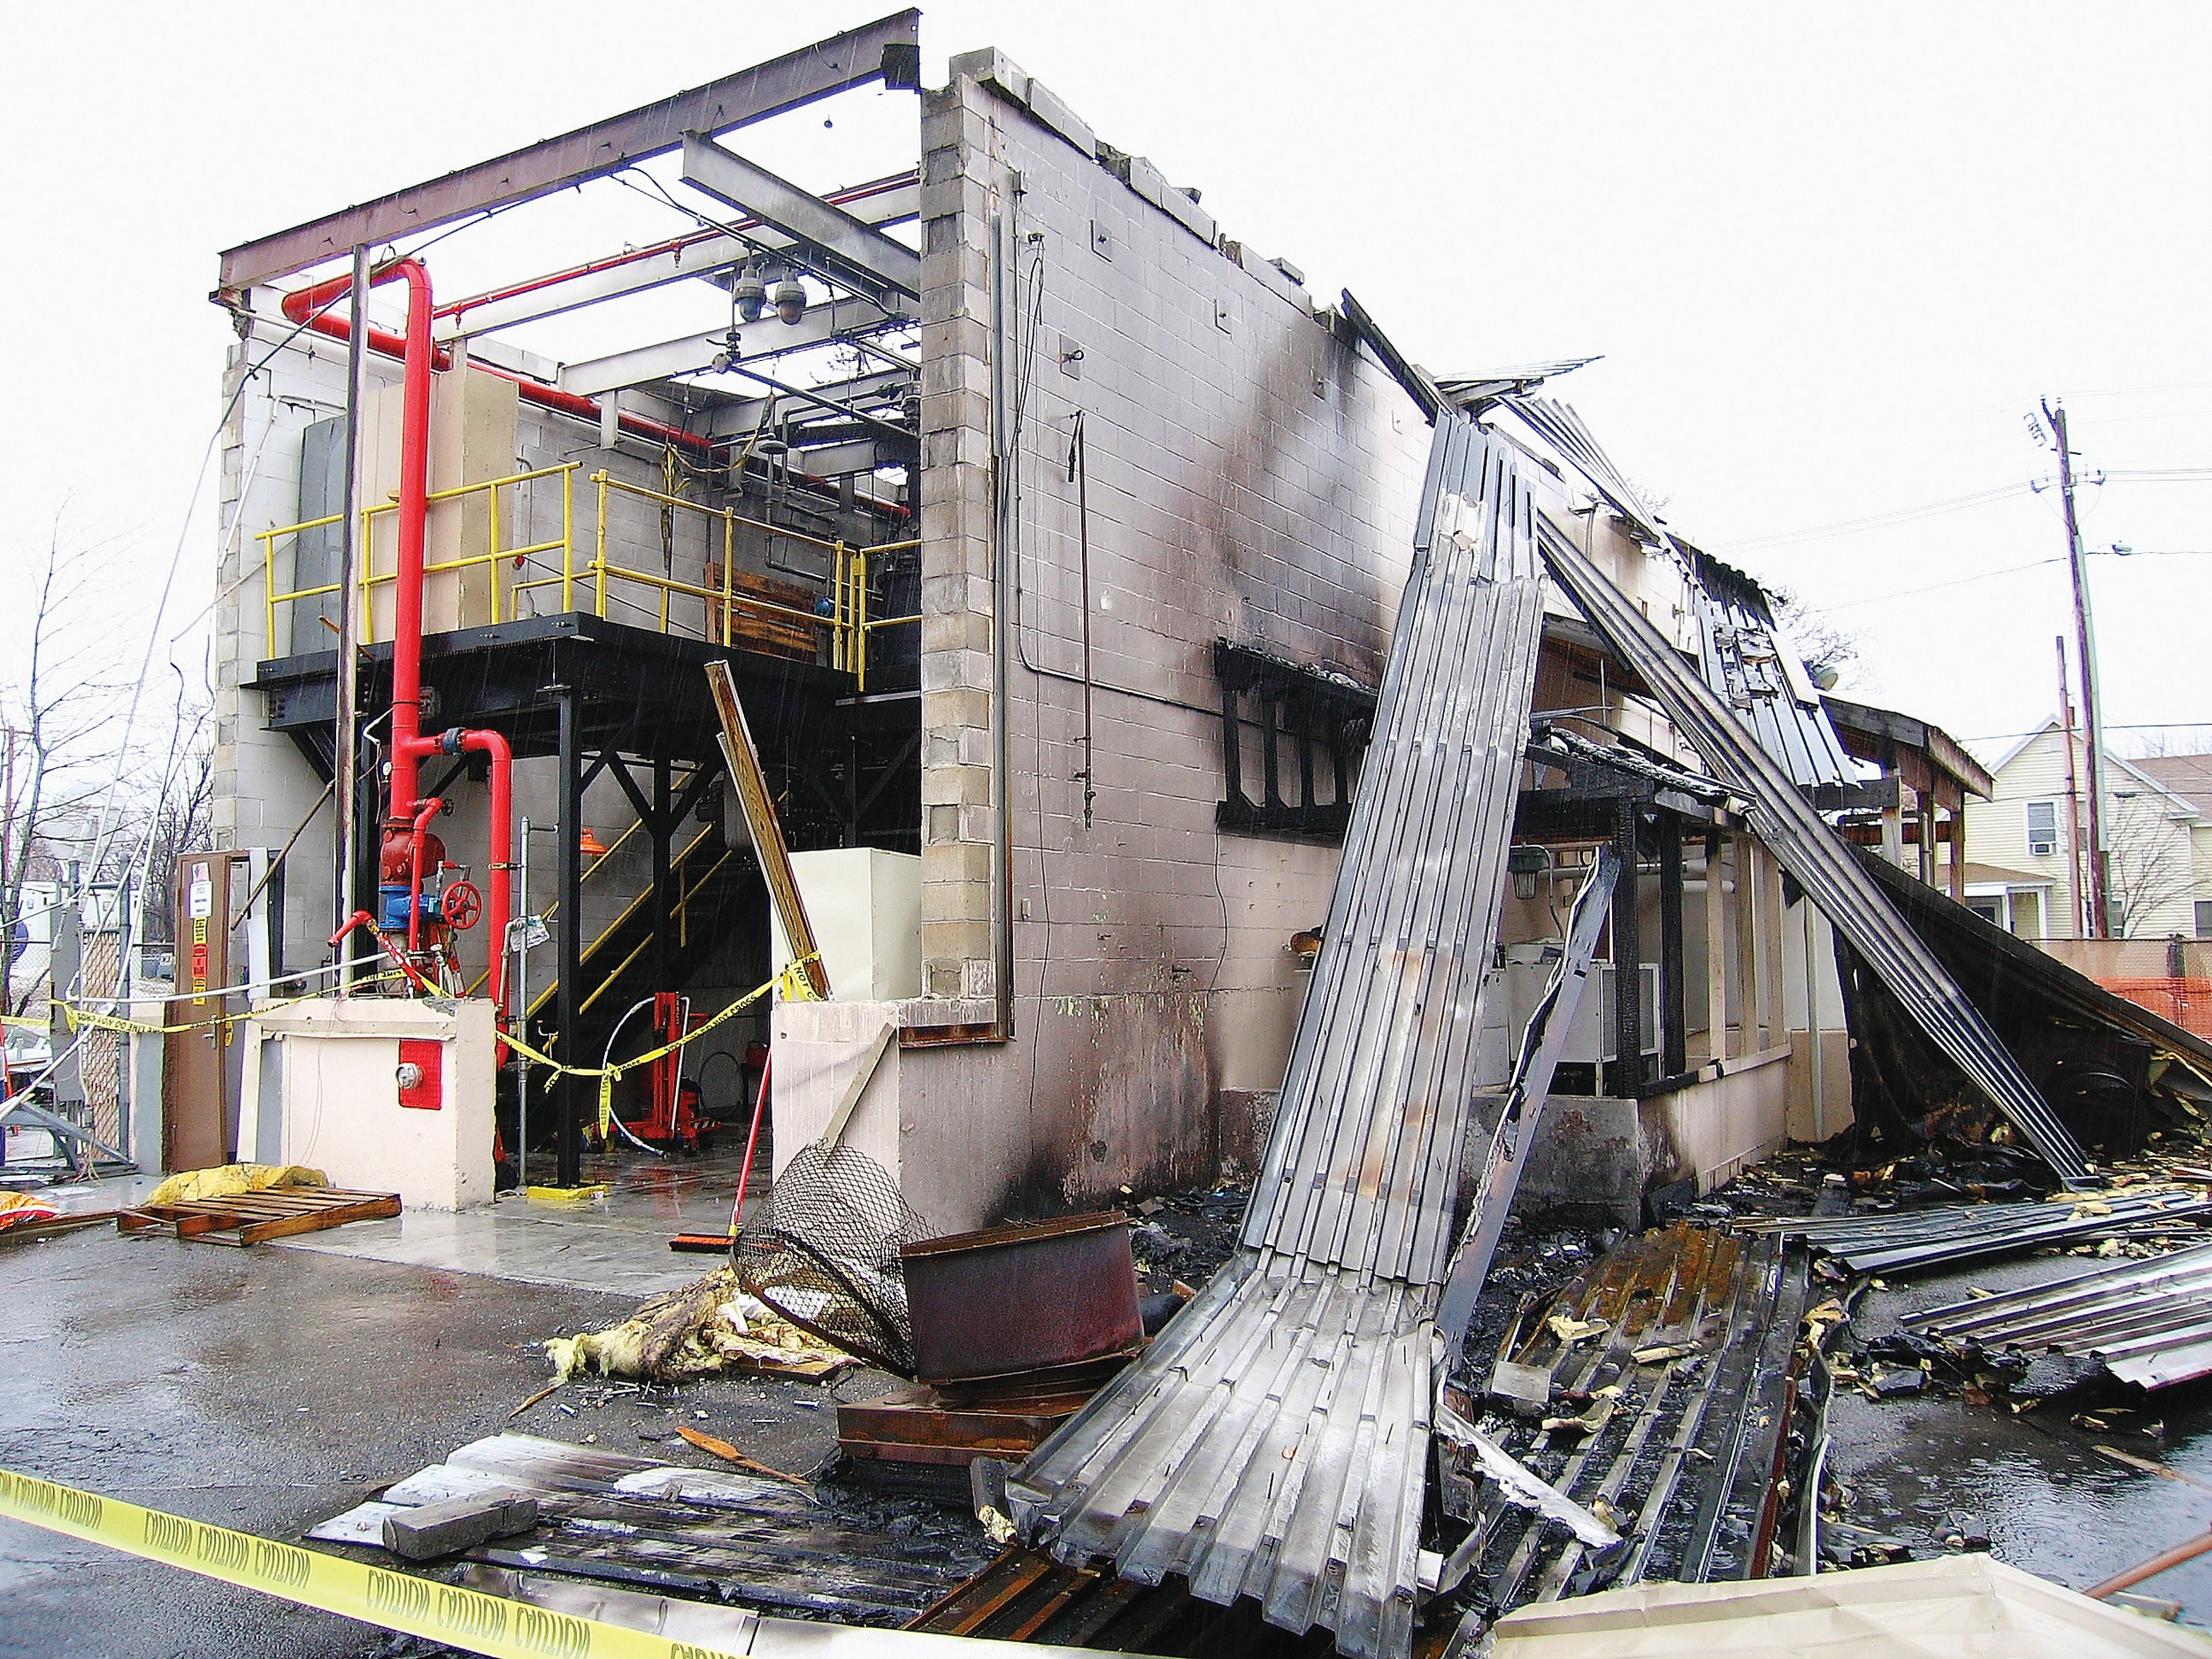 PCI Synthetics Explosion Damage | Professional Loss Adjusters